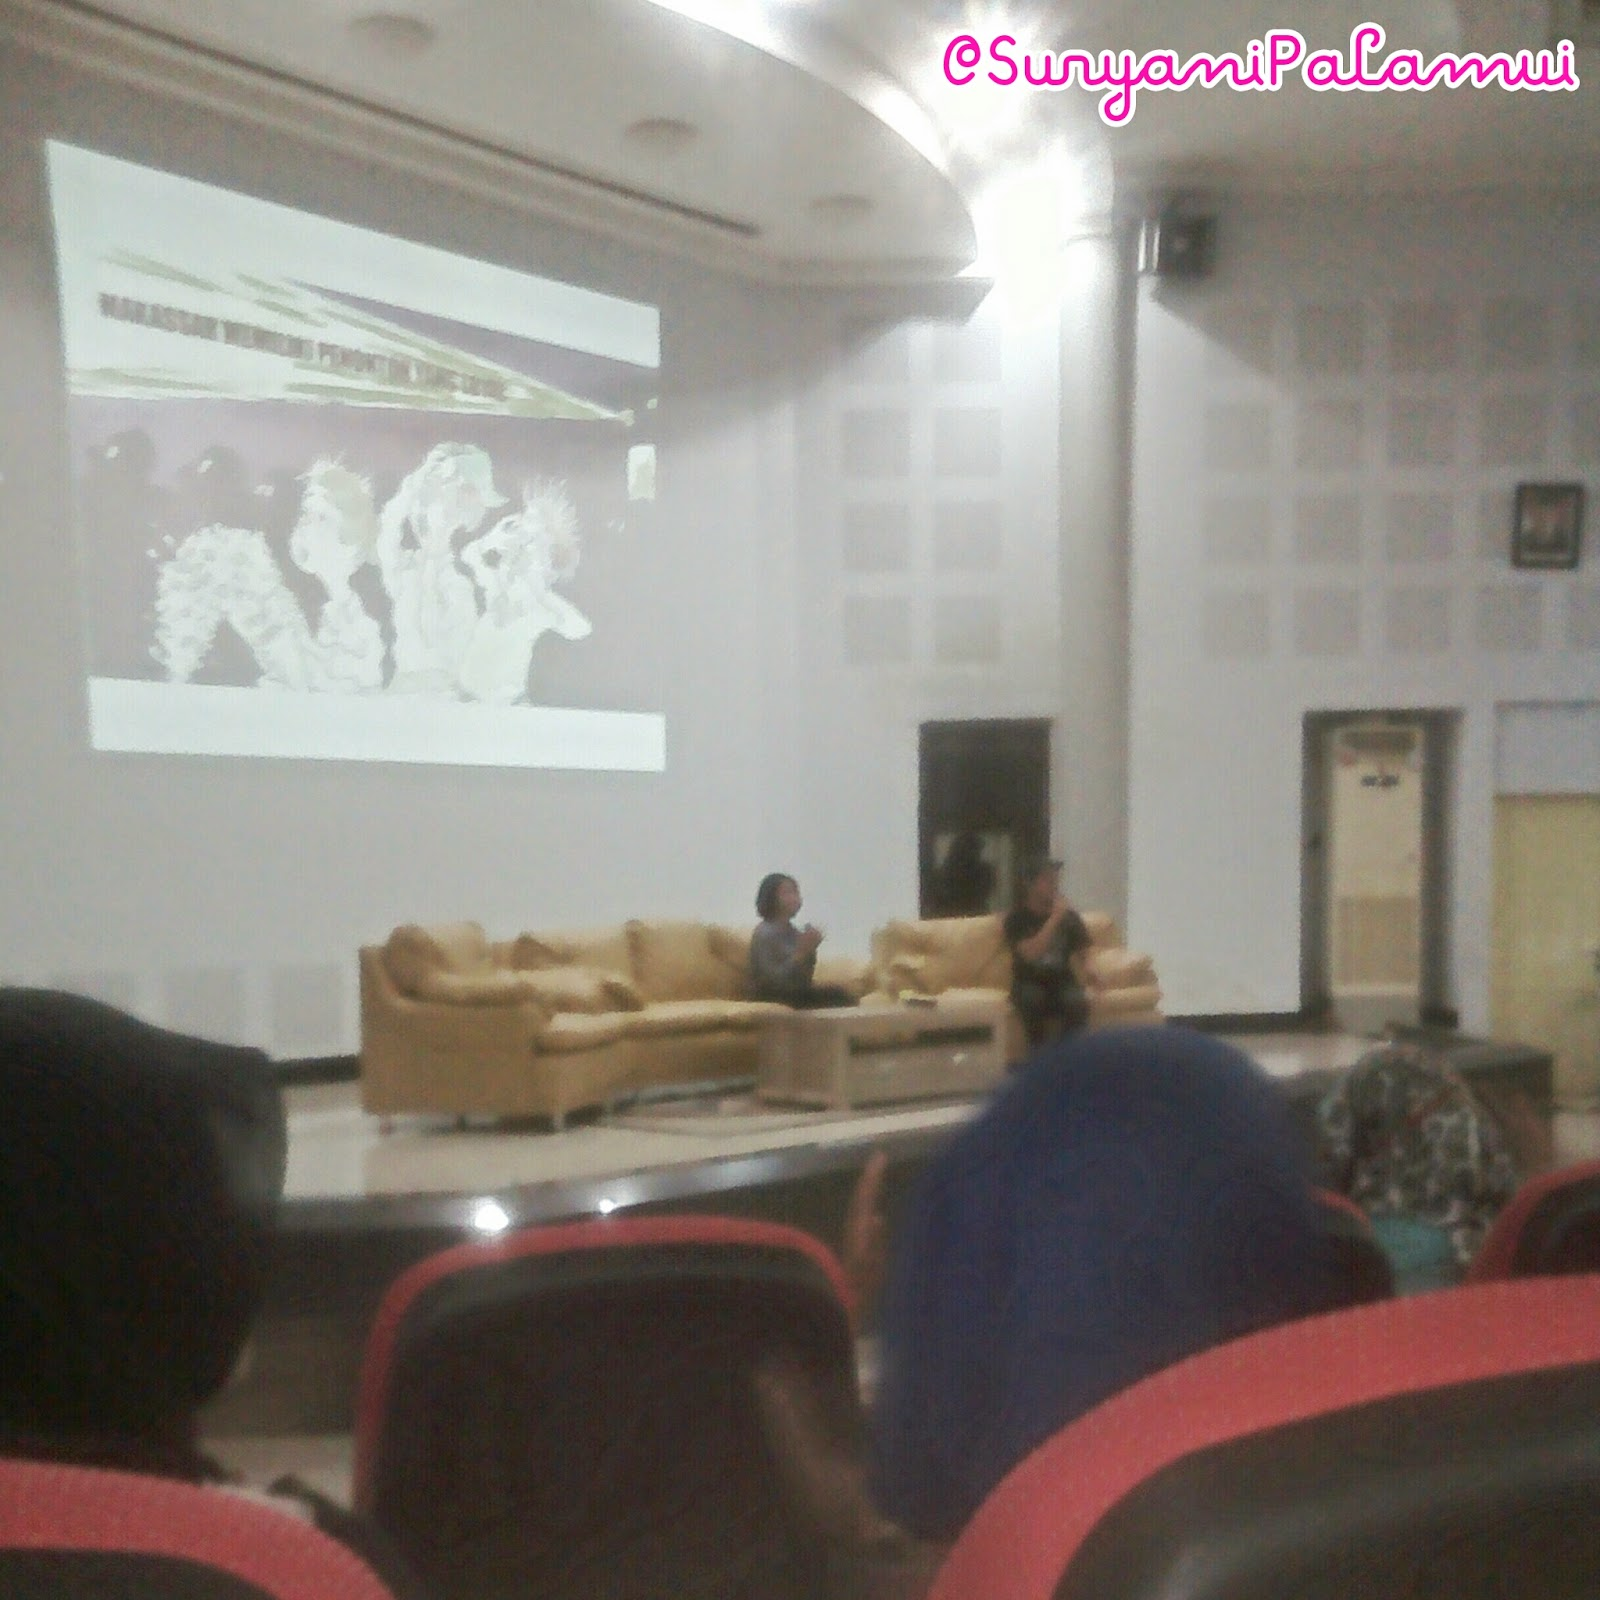 Filosofi Kopi The Movie Goes to Campus UNHAS Yanikmatilah Saja